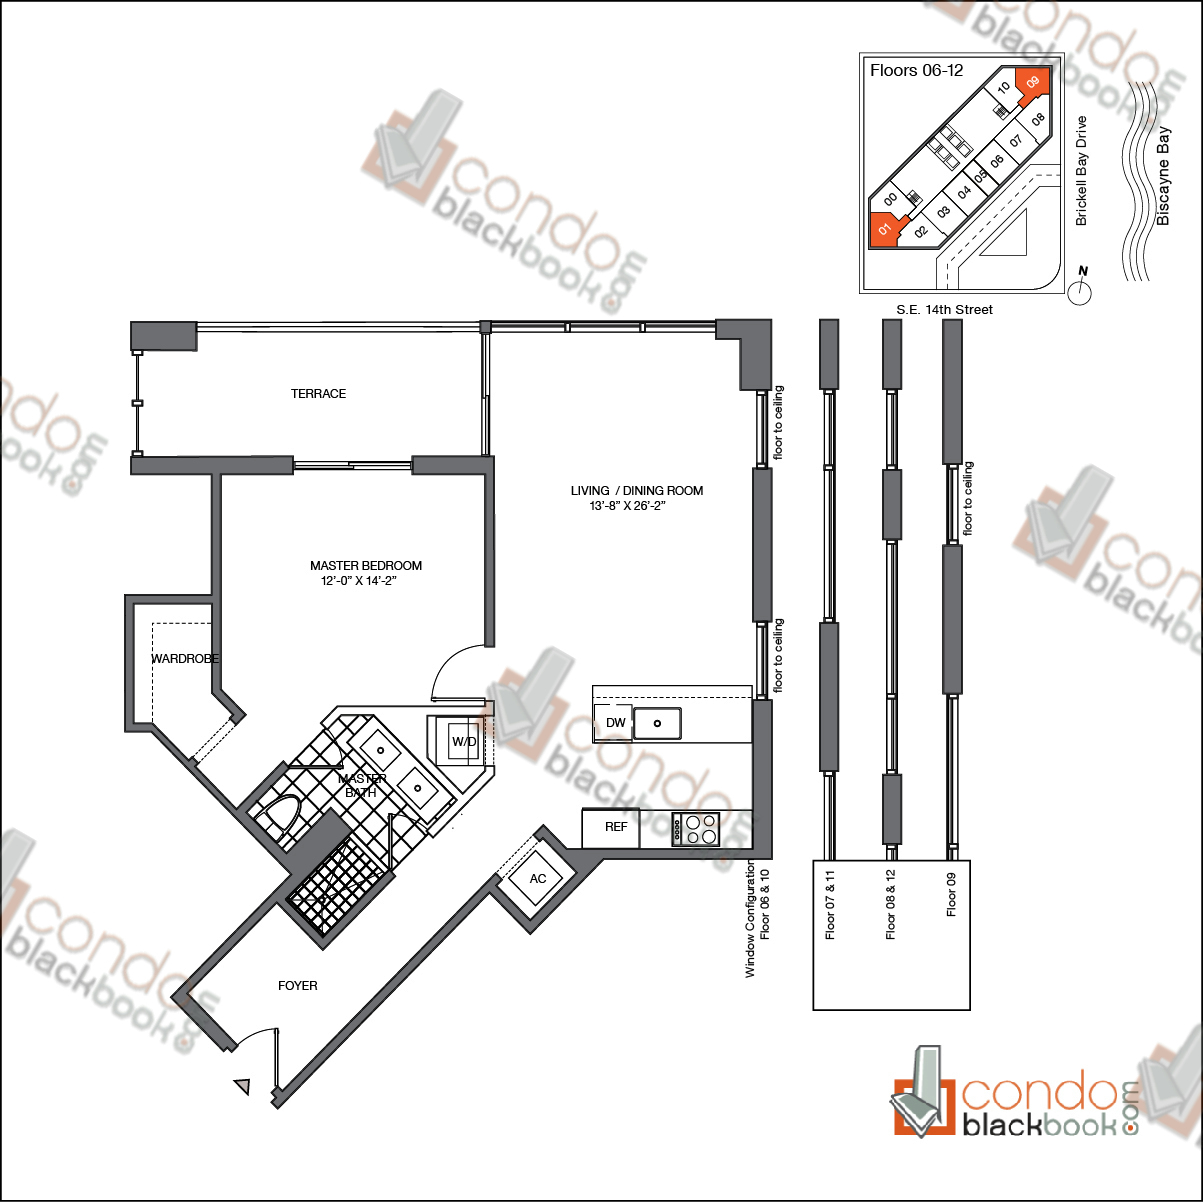 Floor plan for Brickell House Brickell Miami, model A1_6-12, line 01, 09, 1/1 bedrooms, 863 sq ft